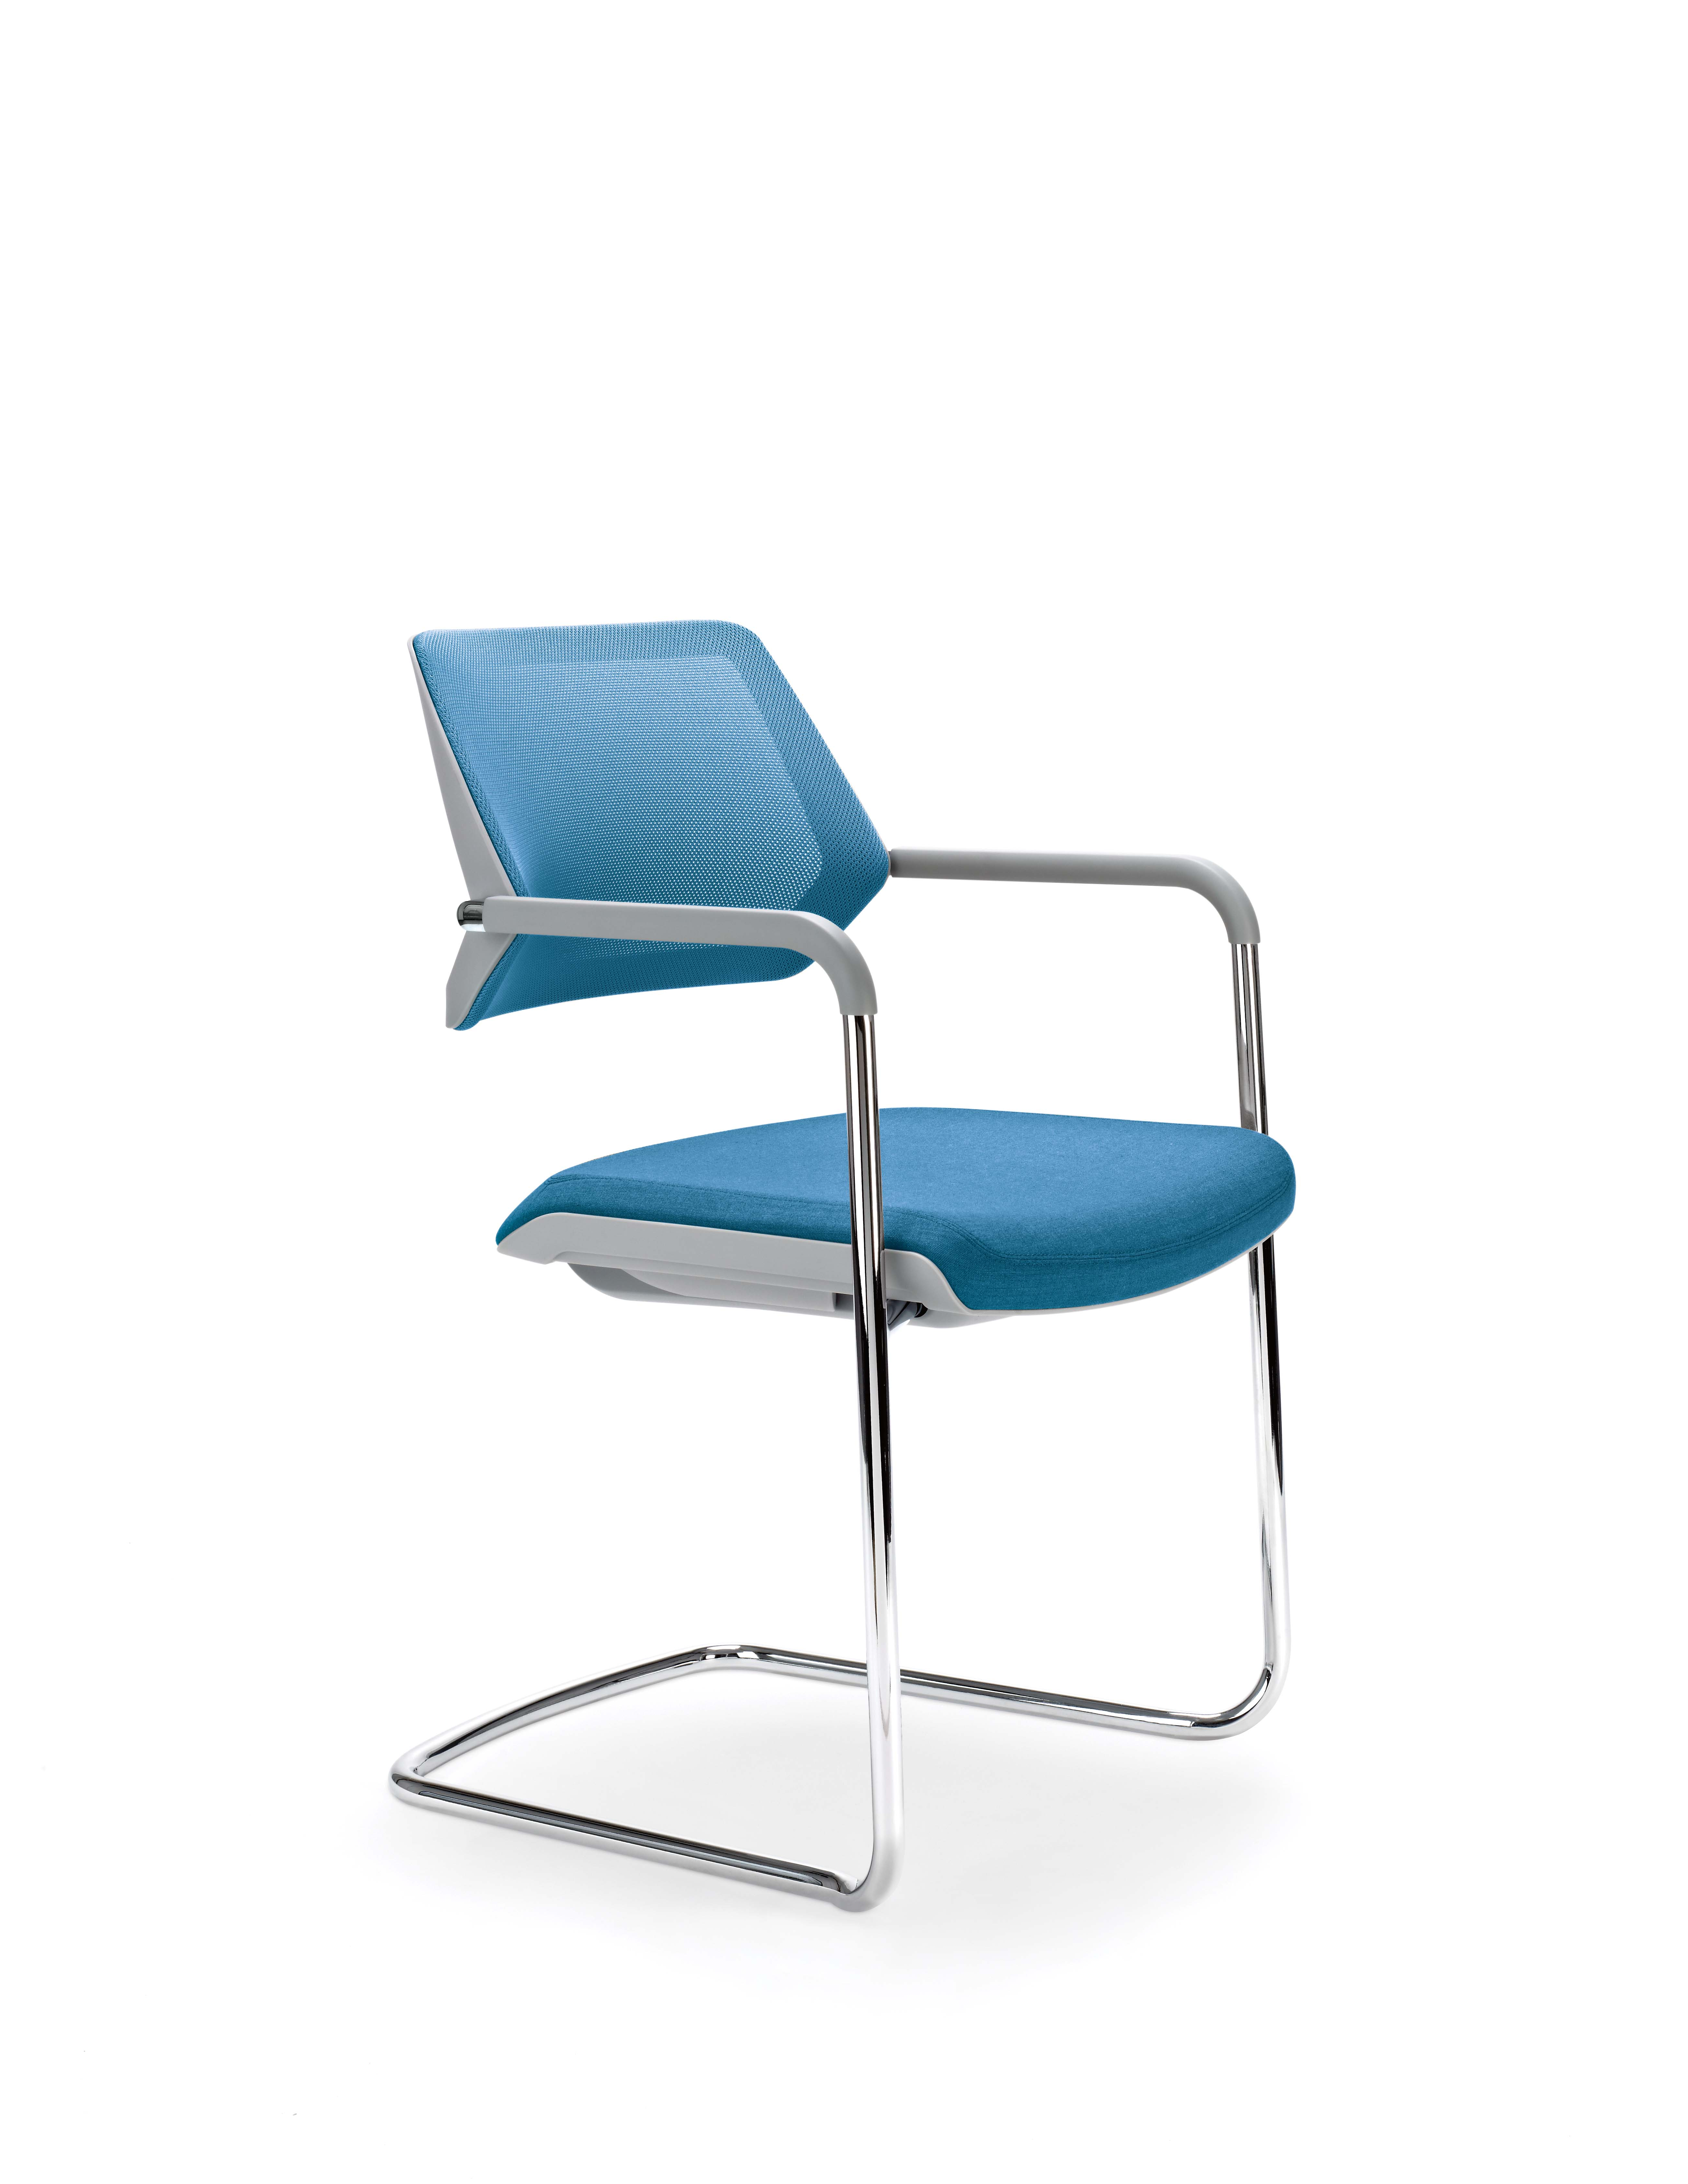 QiVi sled base chair